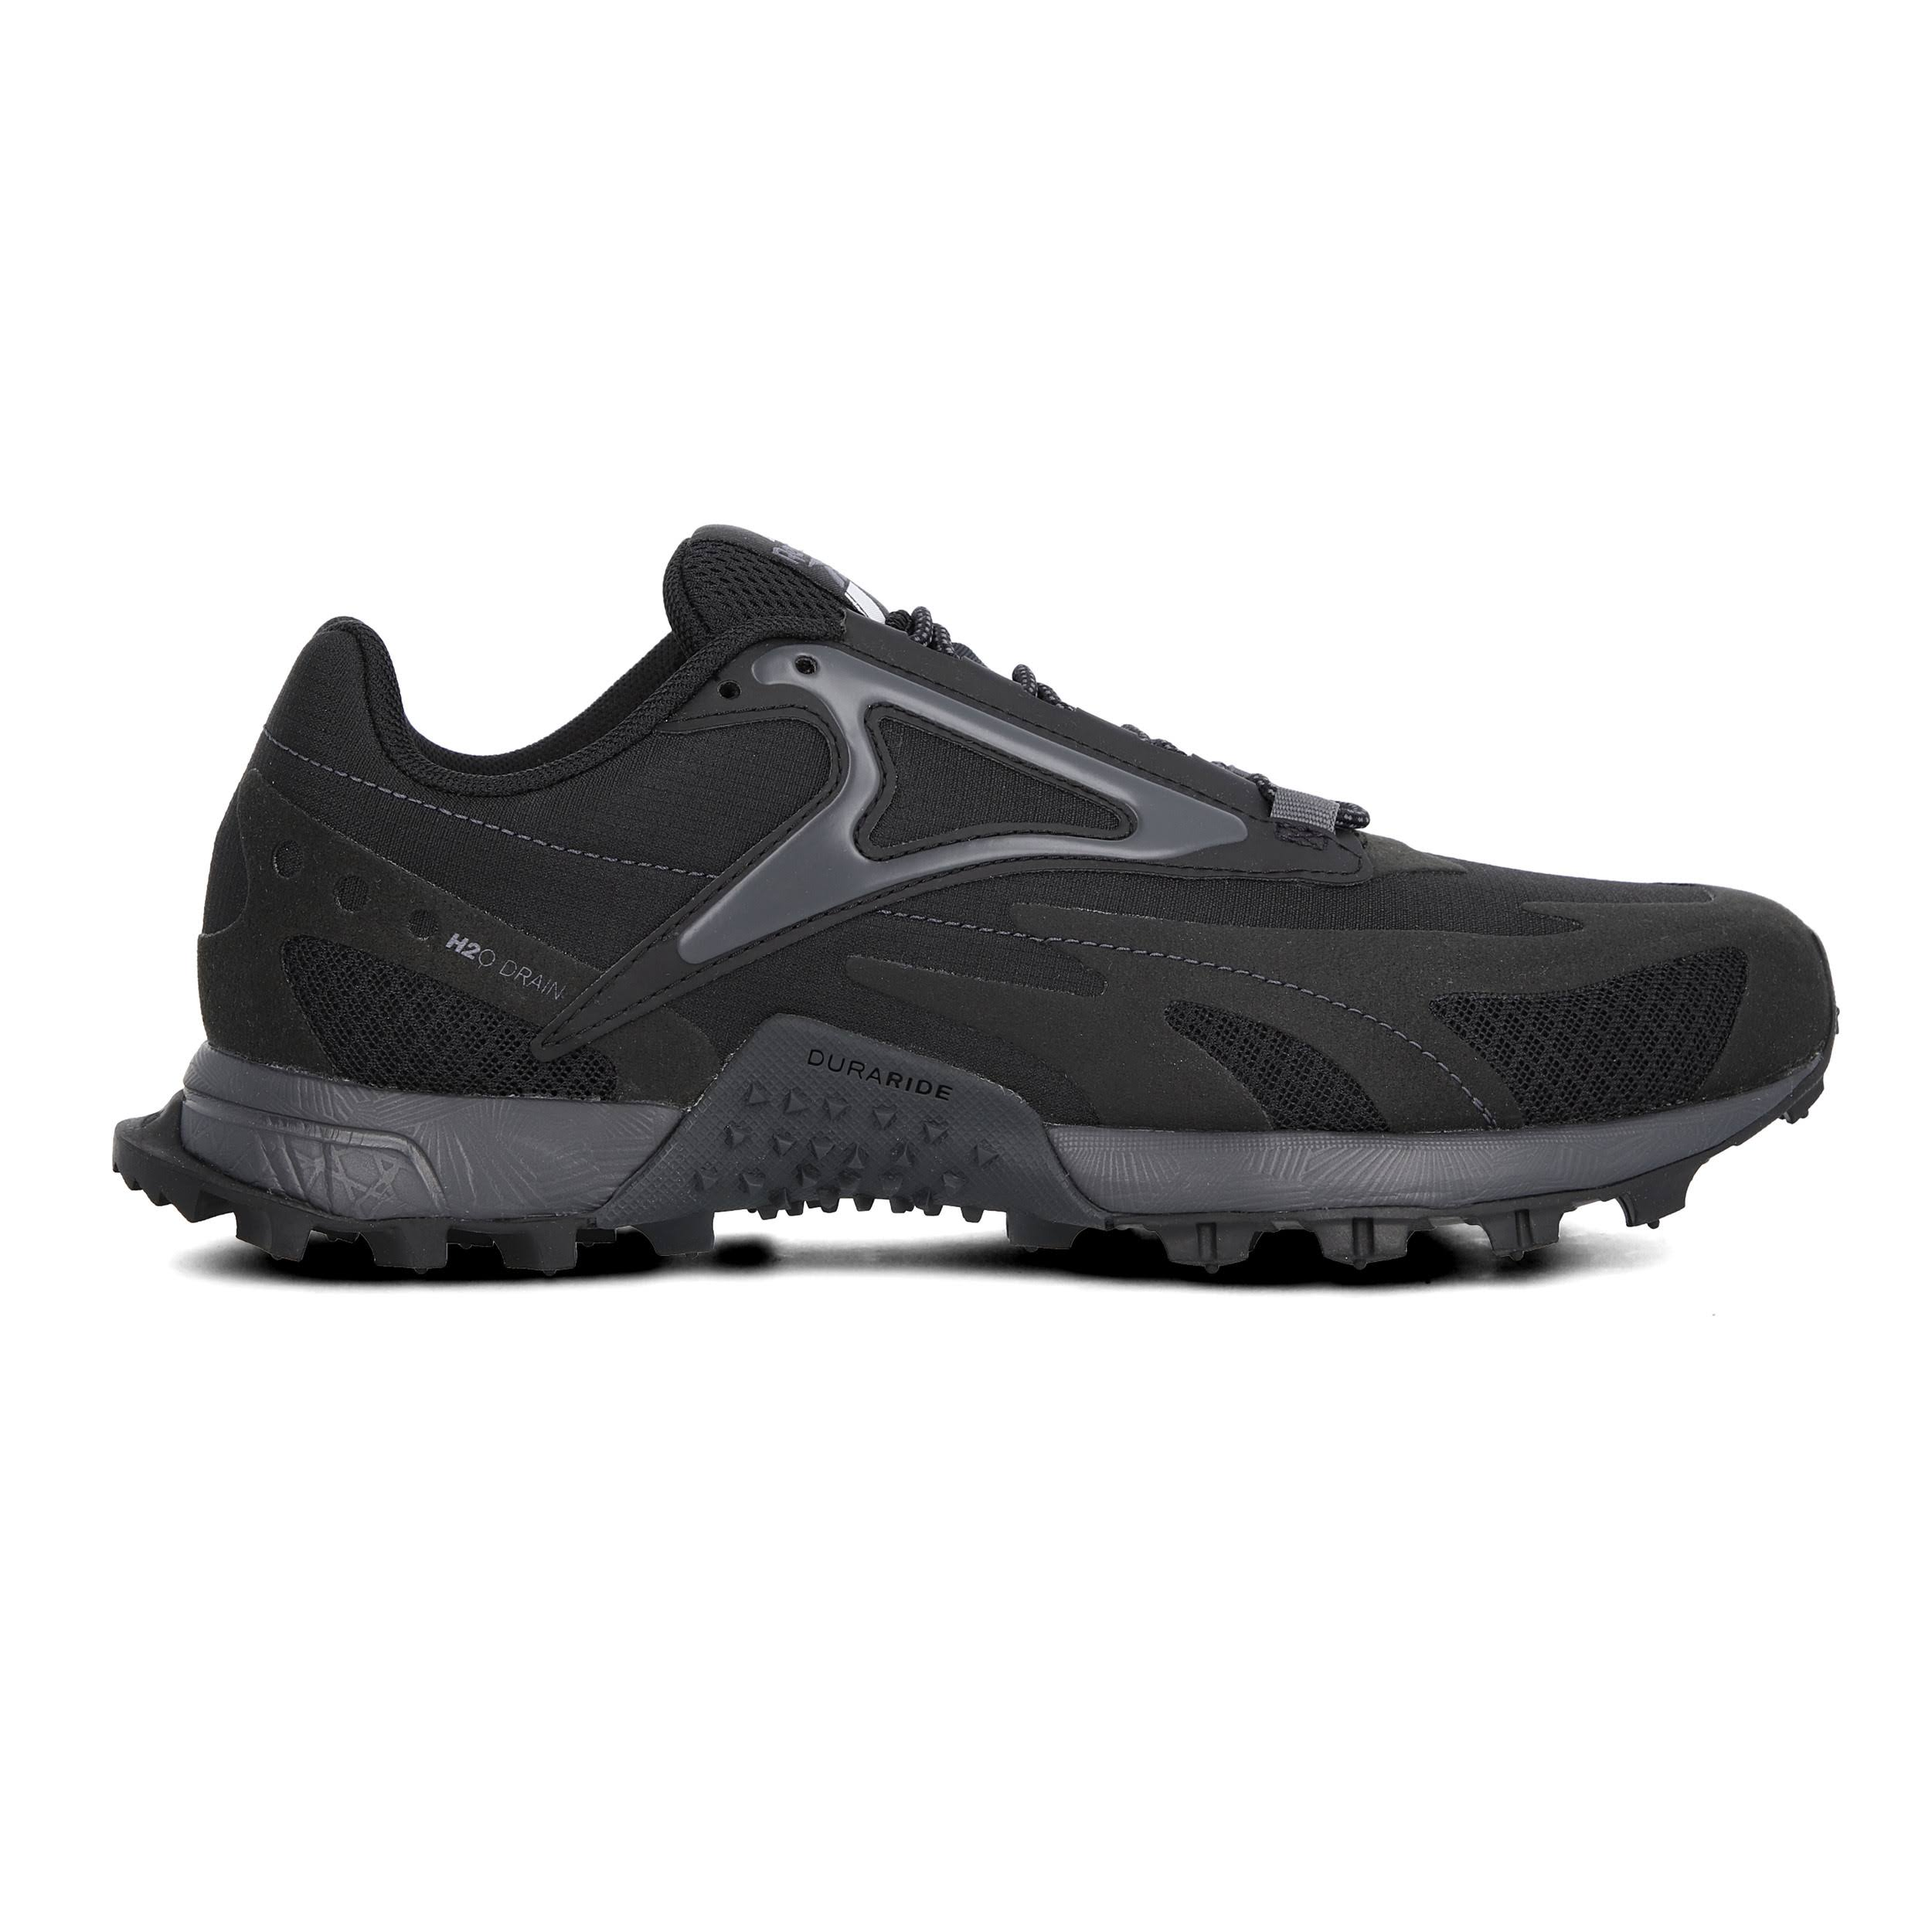 Reebok at Craze 2.0 Shoes - Black